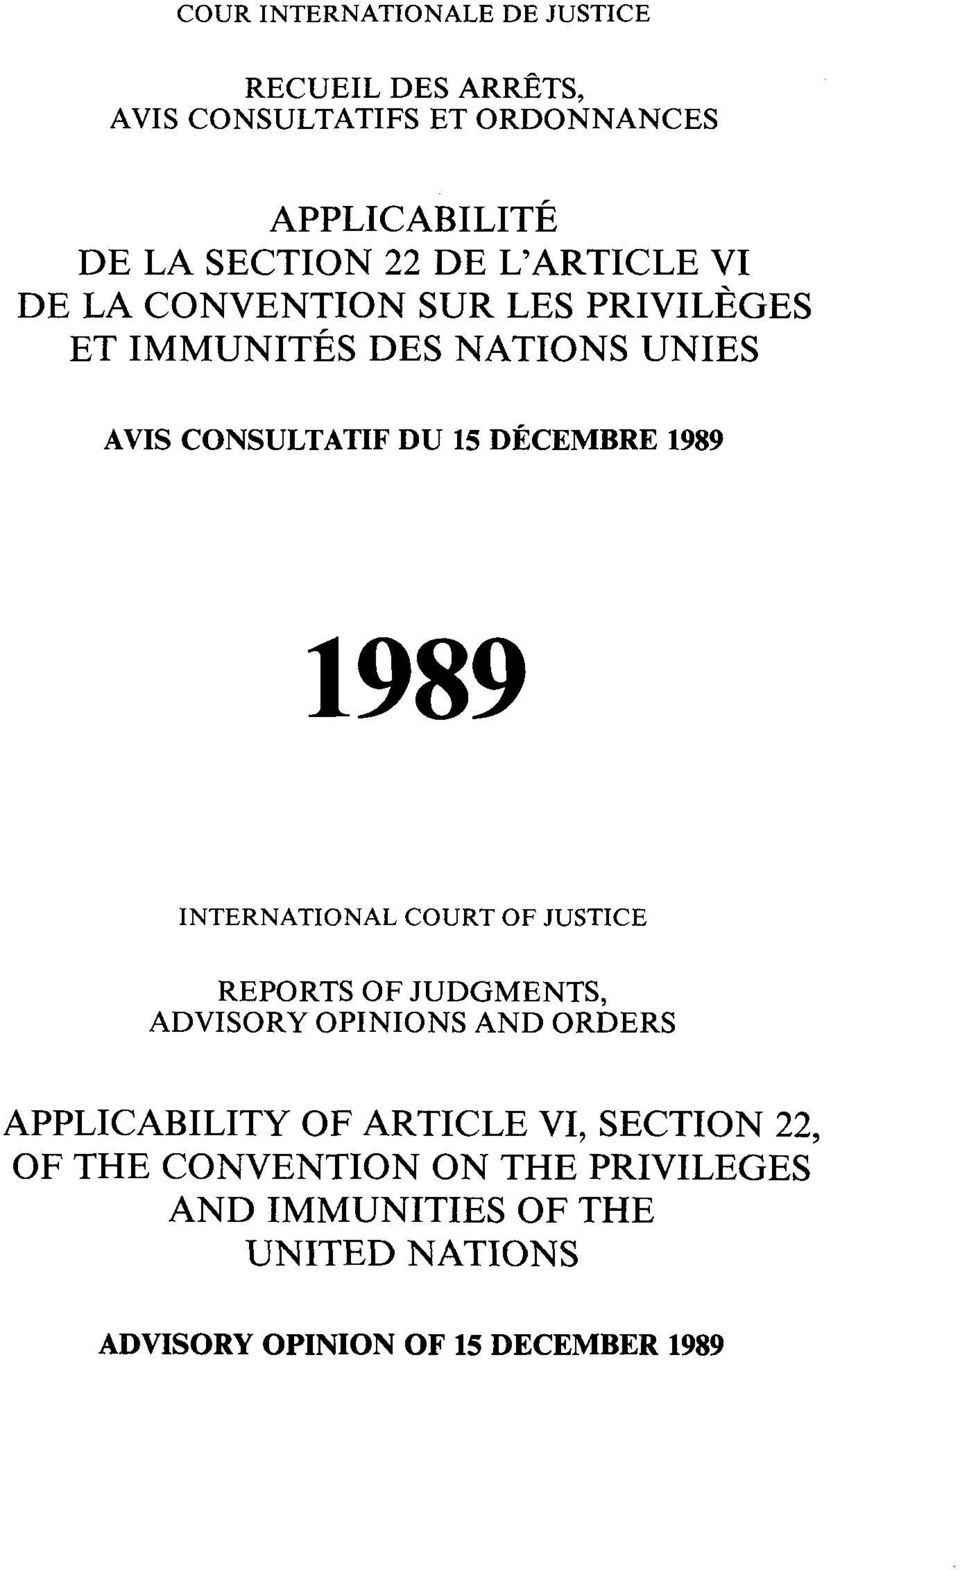 1989 INTERNATIONAL COURT OF JUSTICE REPORTS OF JUDGMENTS, ADVISORY OPINIONS AND ORDERS APPLICABILITY OF ARTICLE VI,